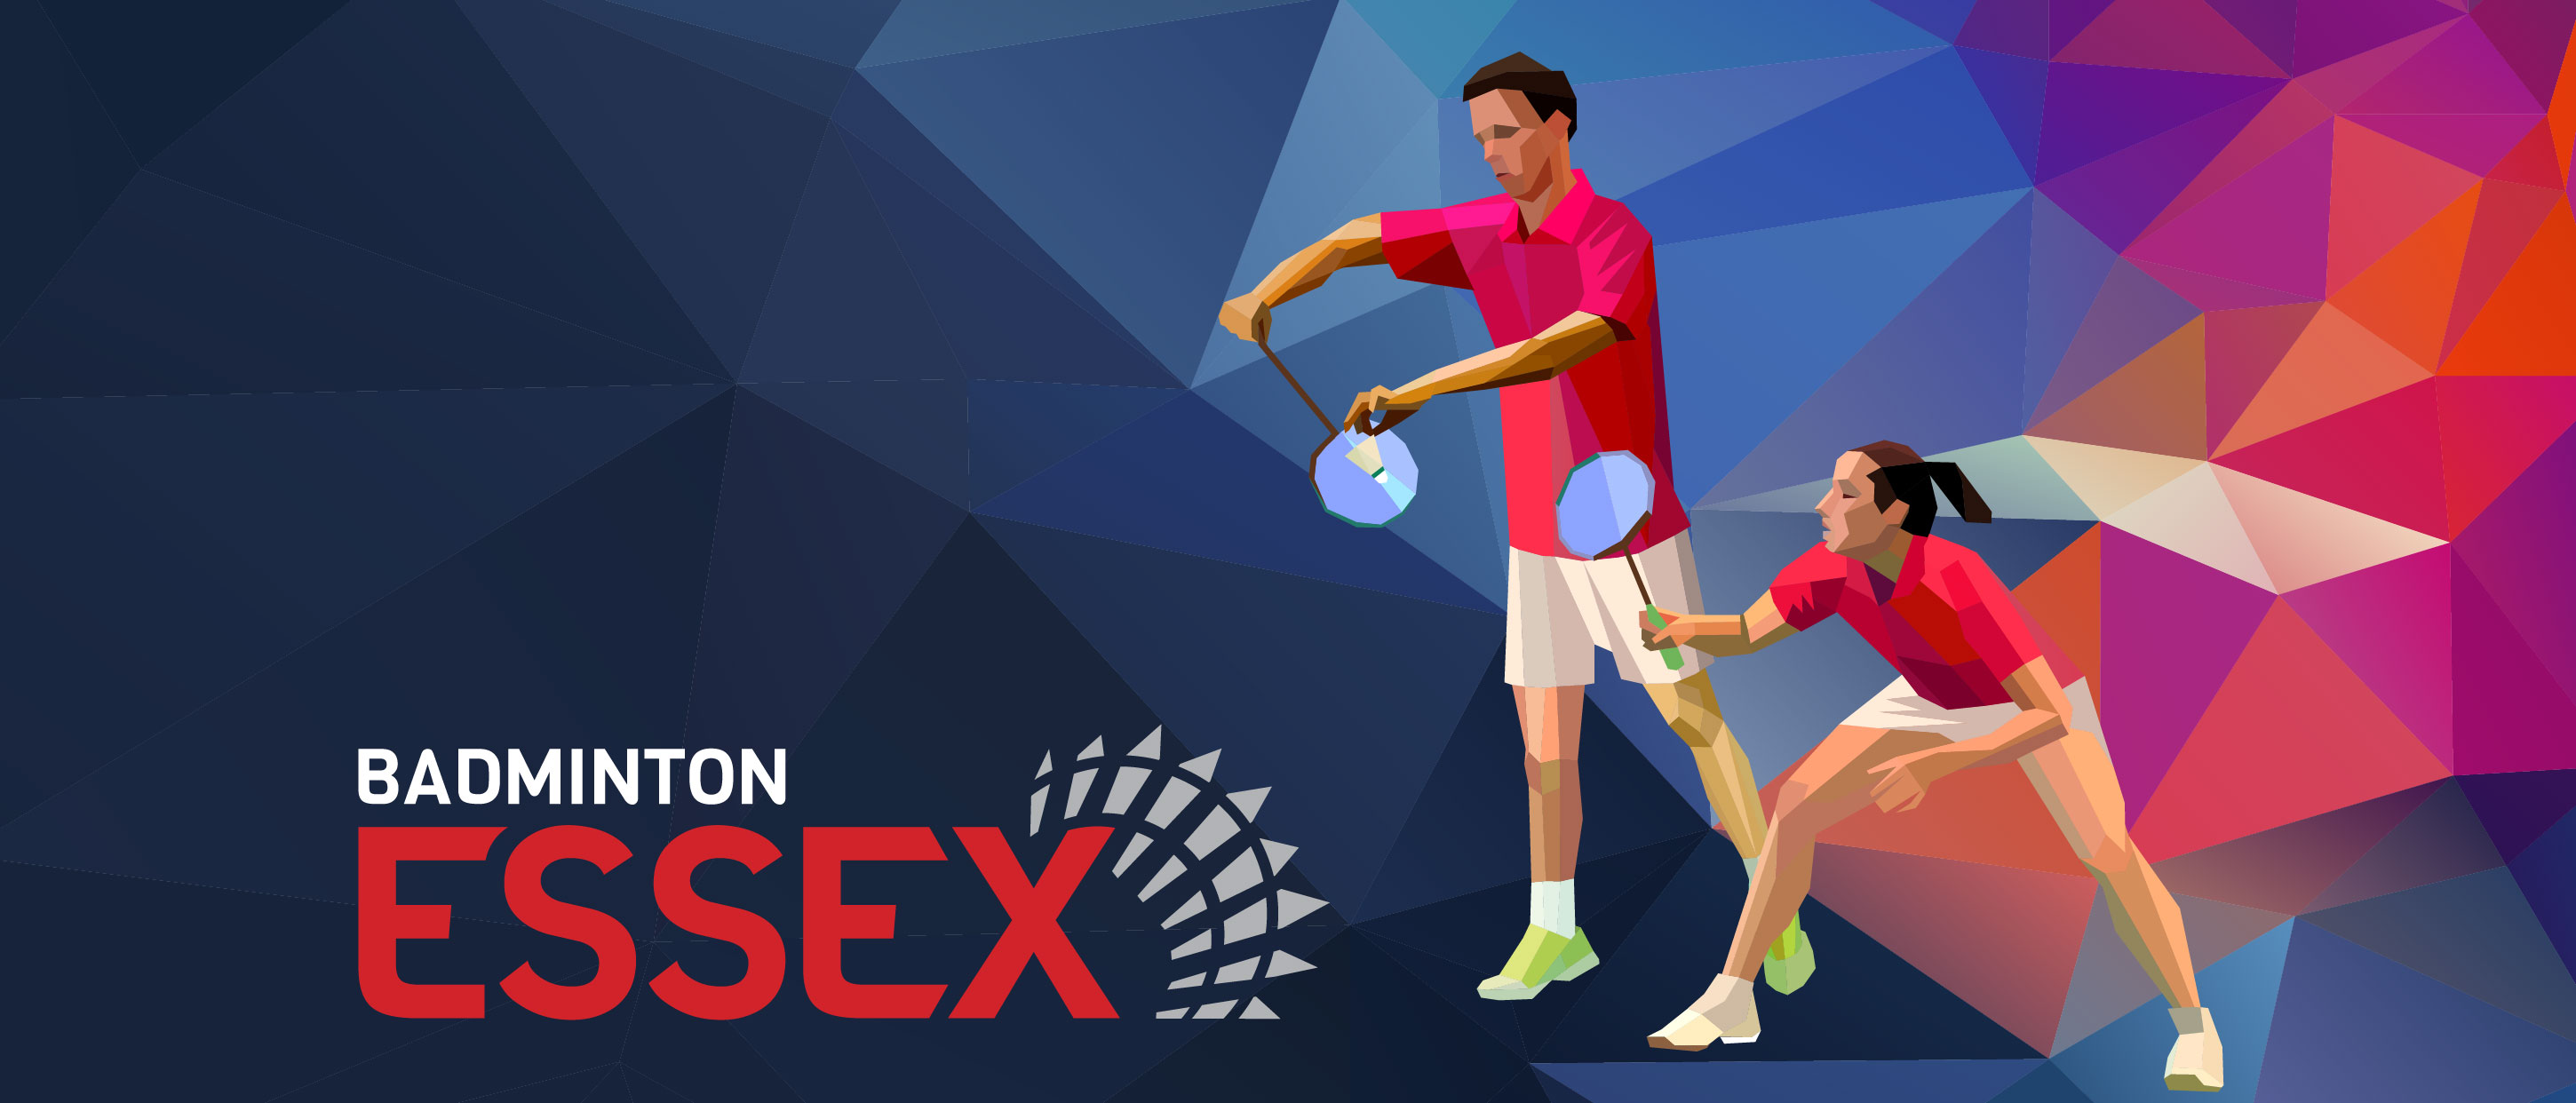 Badminton Essex